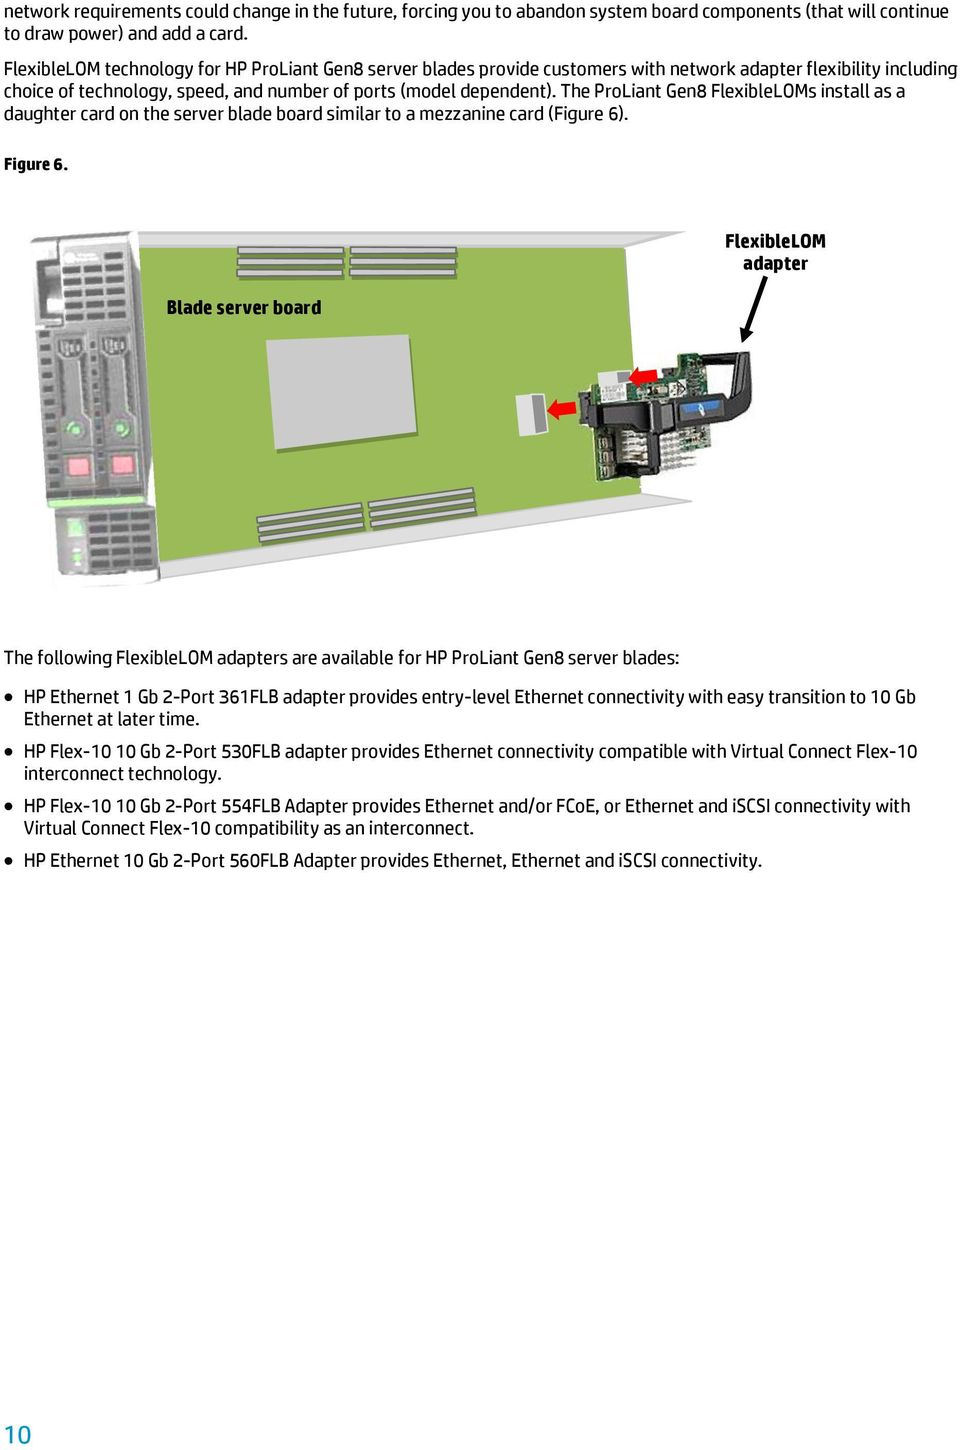 The ProLiant Gen8 FlexibleLOMs install as a daughter card on the server blade board similar to a mezzanine card (Figure 6). Figure 6.